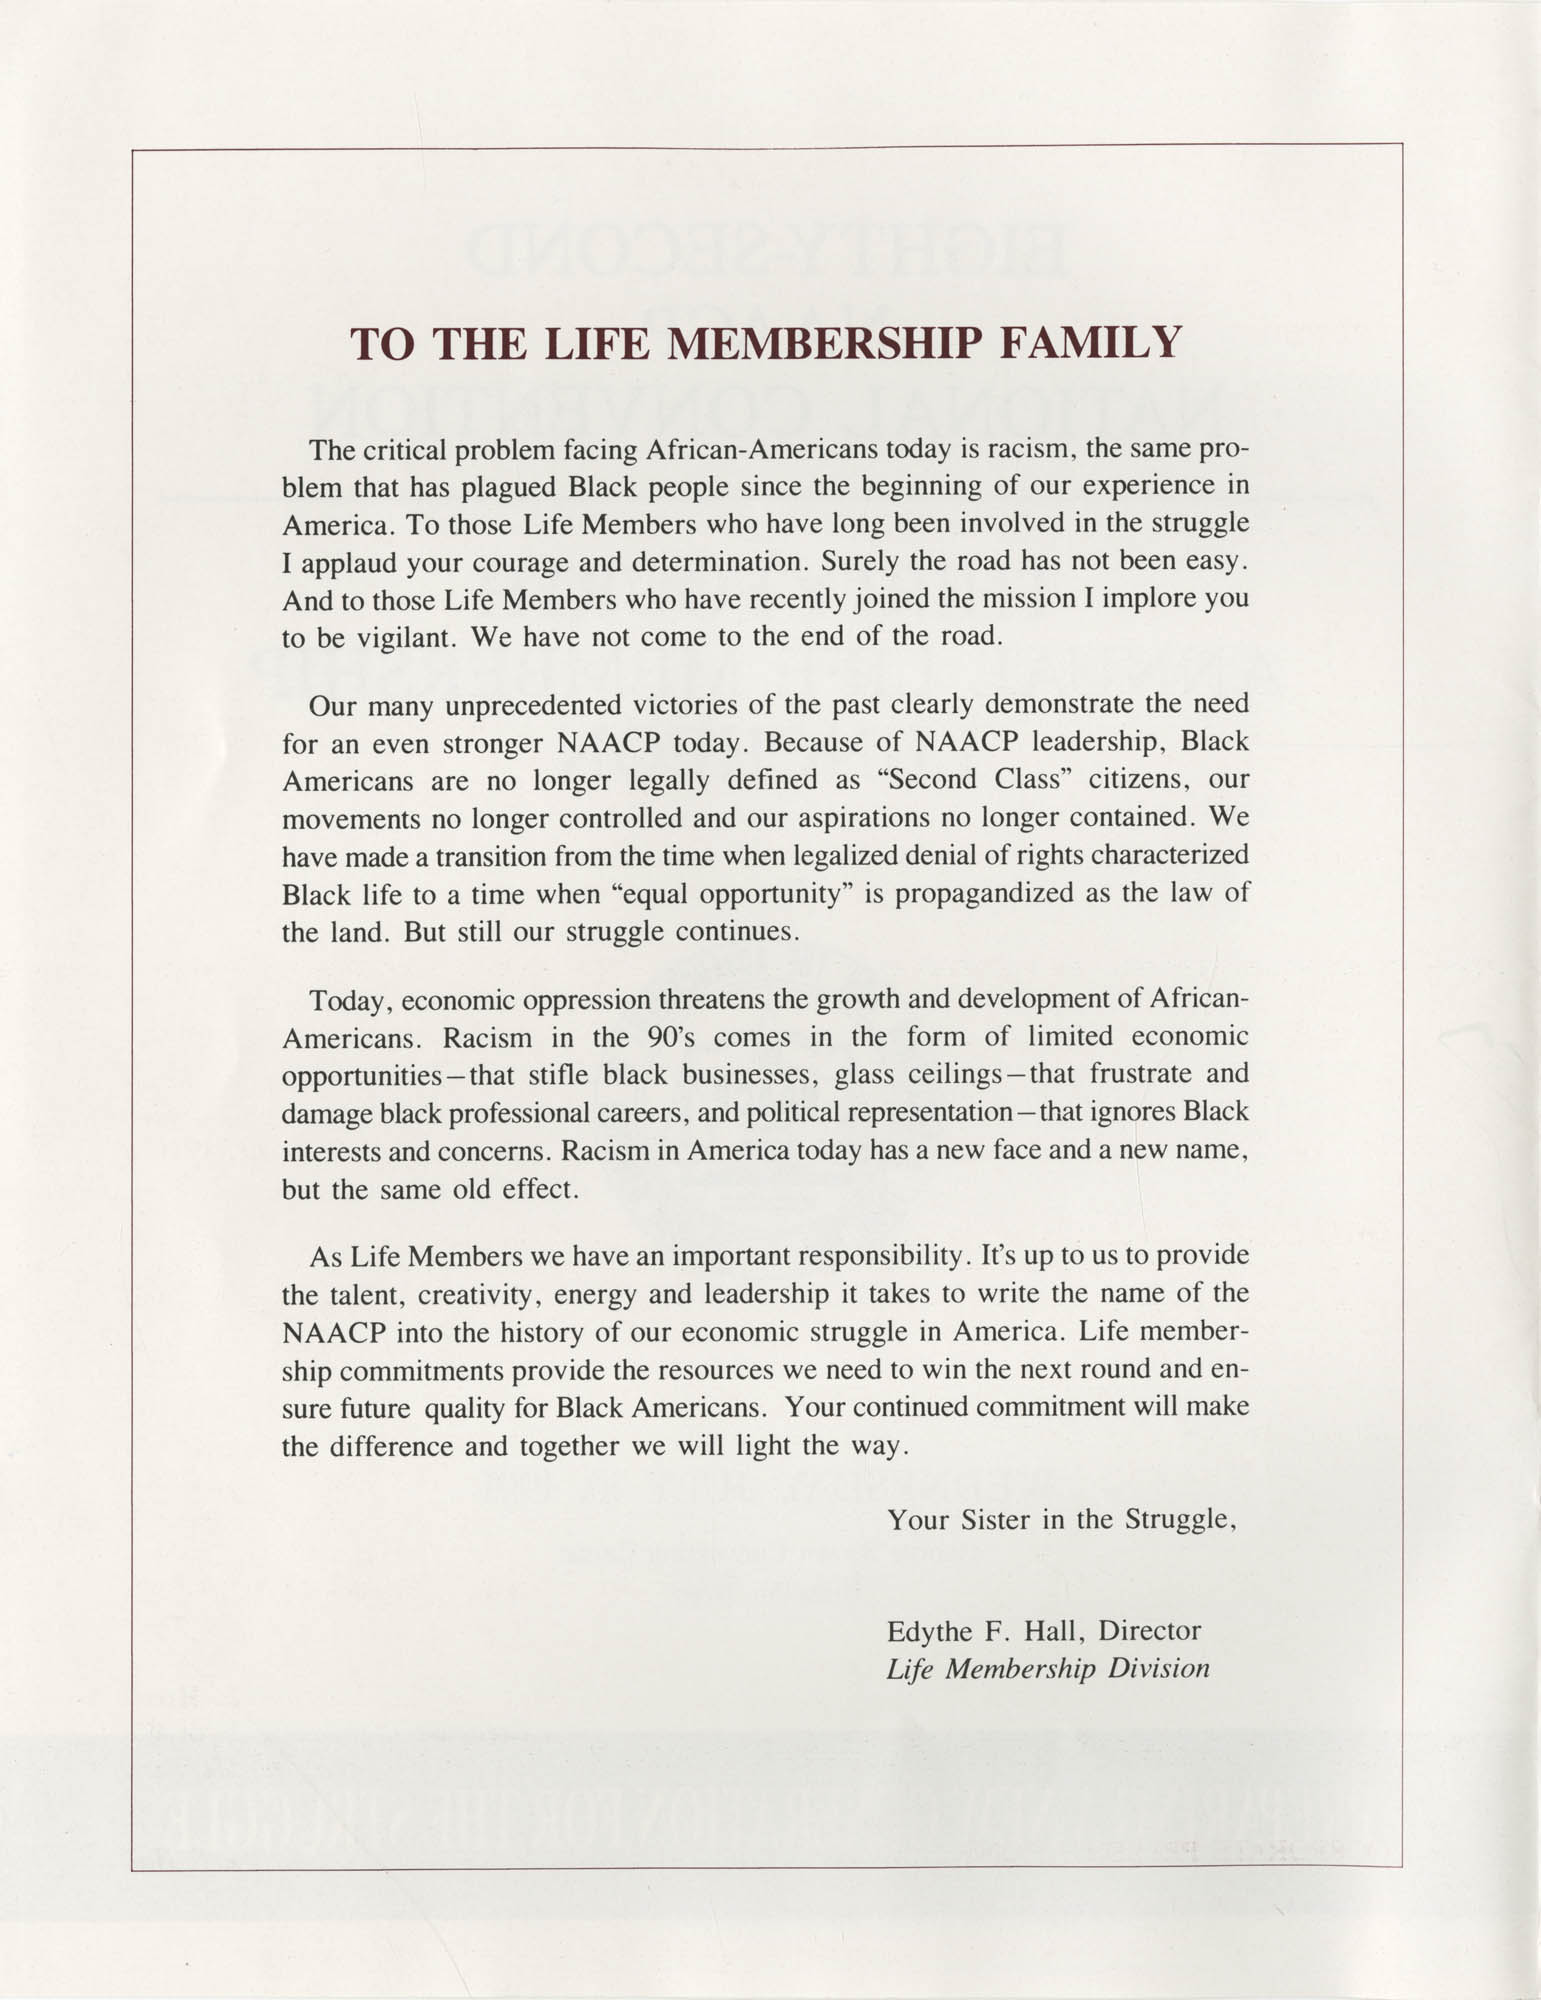 Eighty-Second NAACP National Convention, July 10, 1991, Page 1